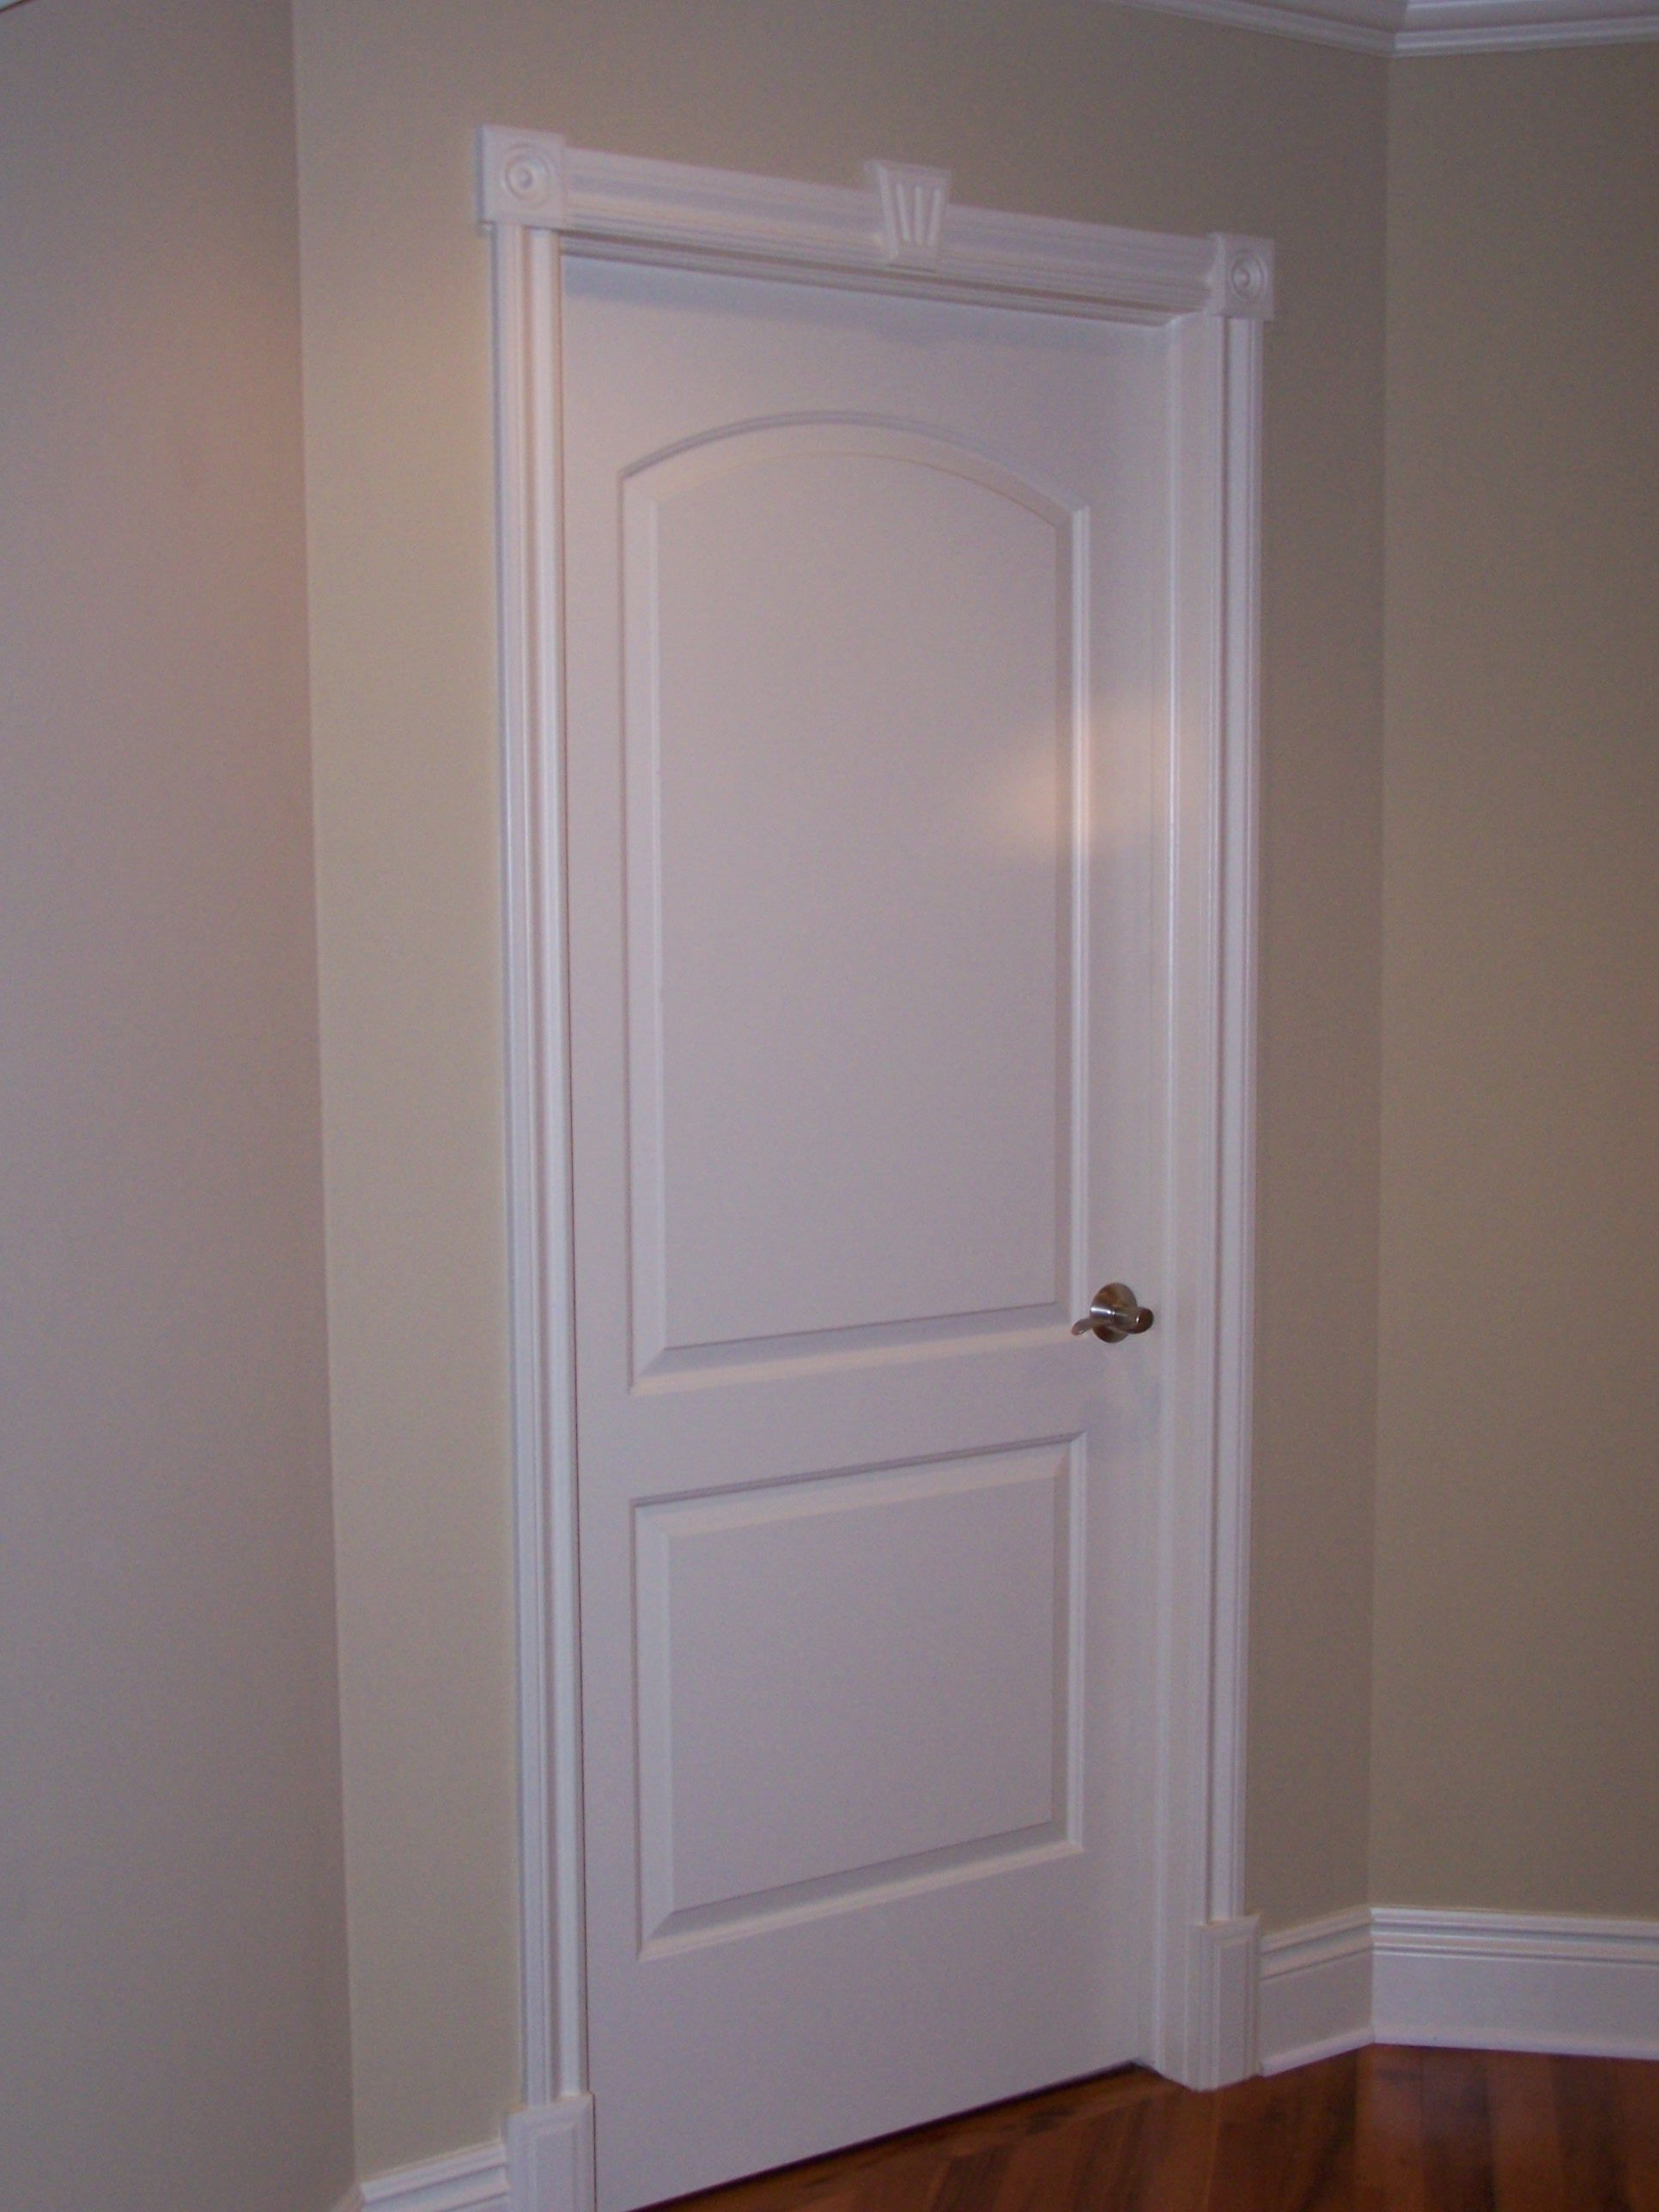 Decorative door trim for the home pinterest door for Over door decorative molding